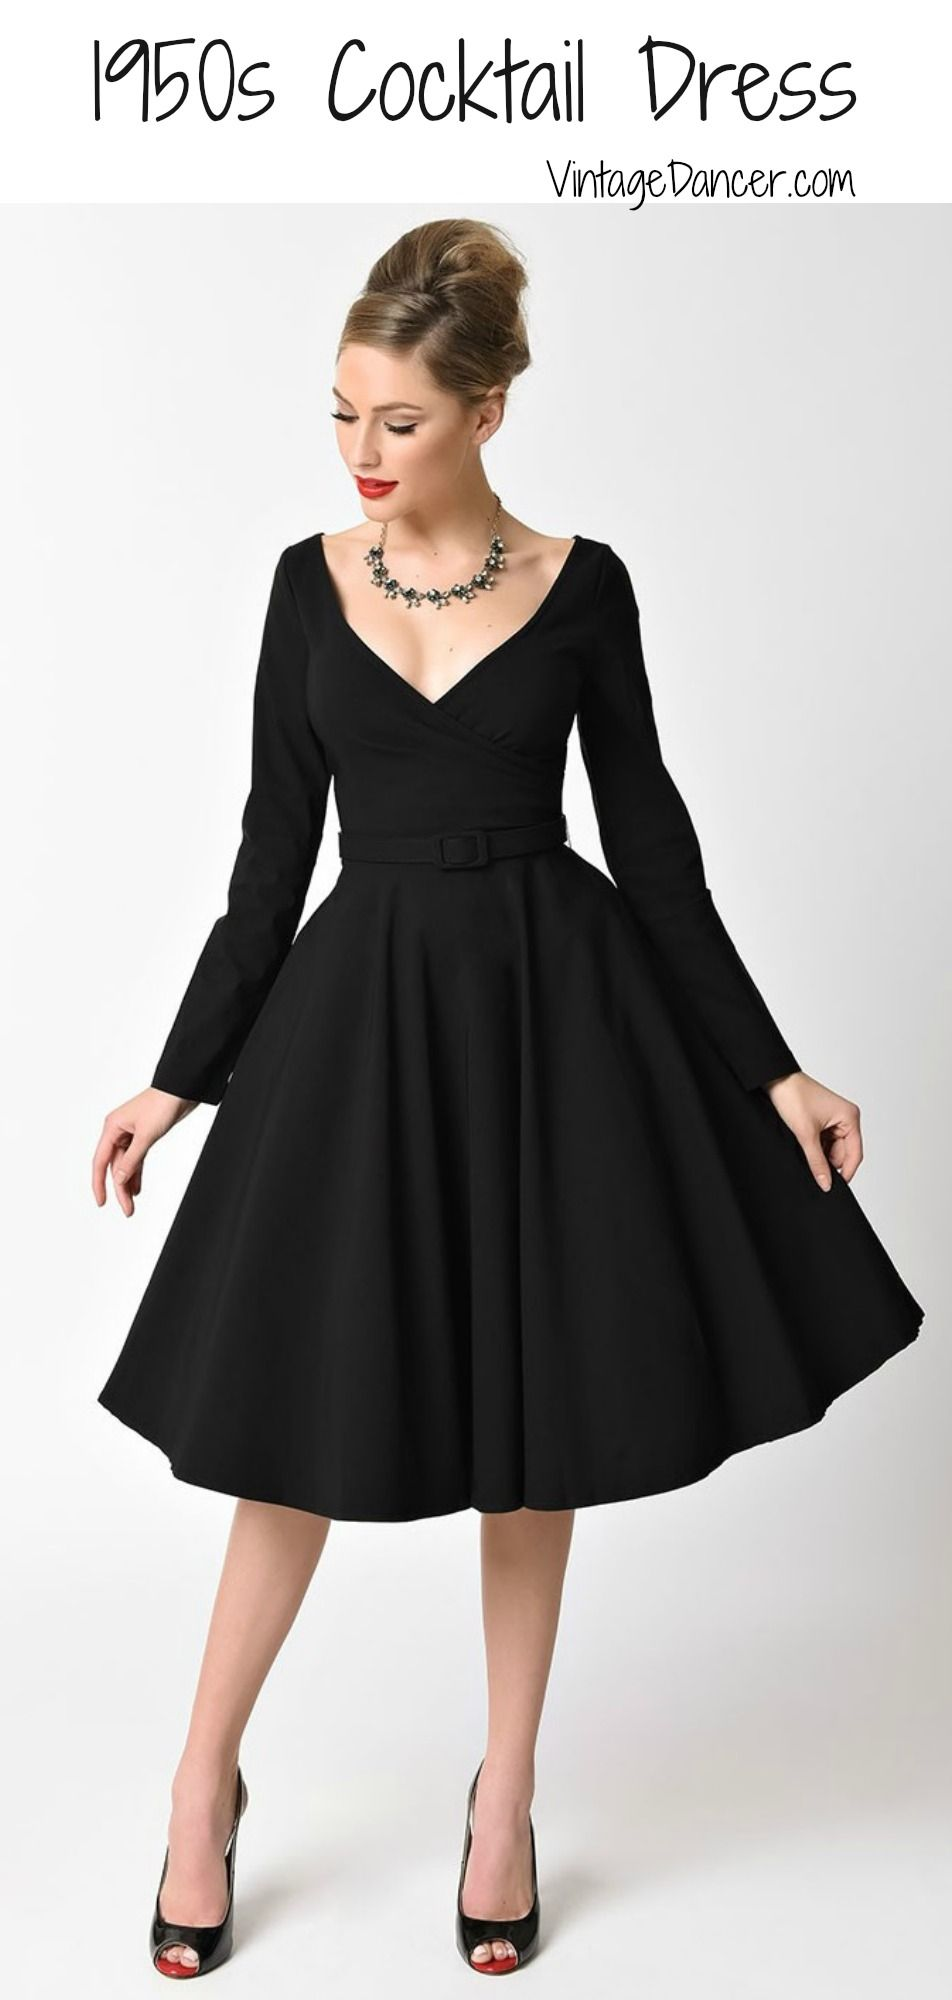 Black 1950s cocktail dresses and party dresses at VintageDancer.com eb131126008e